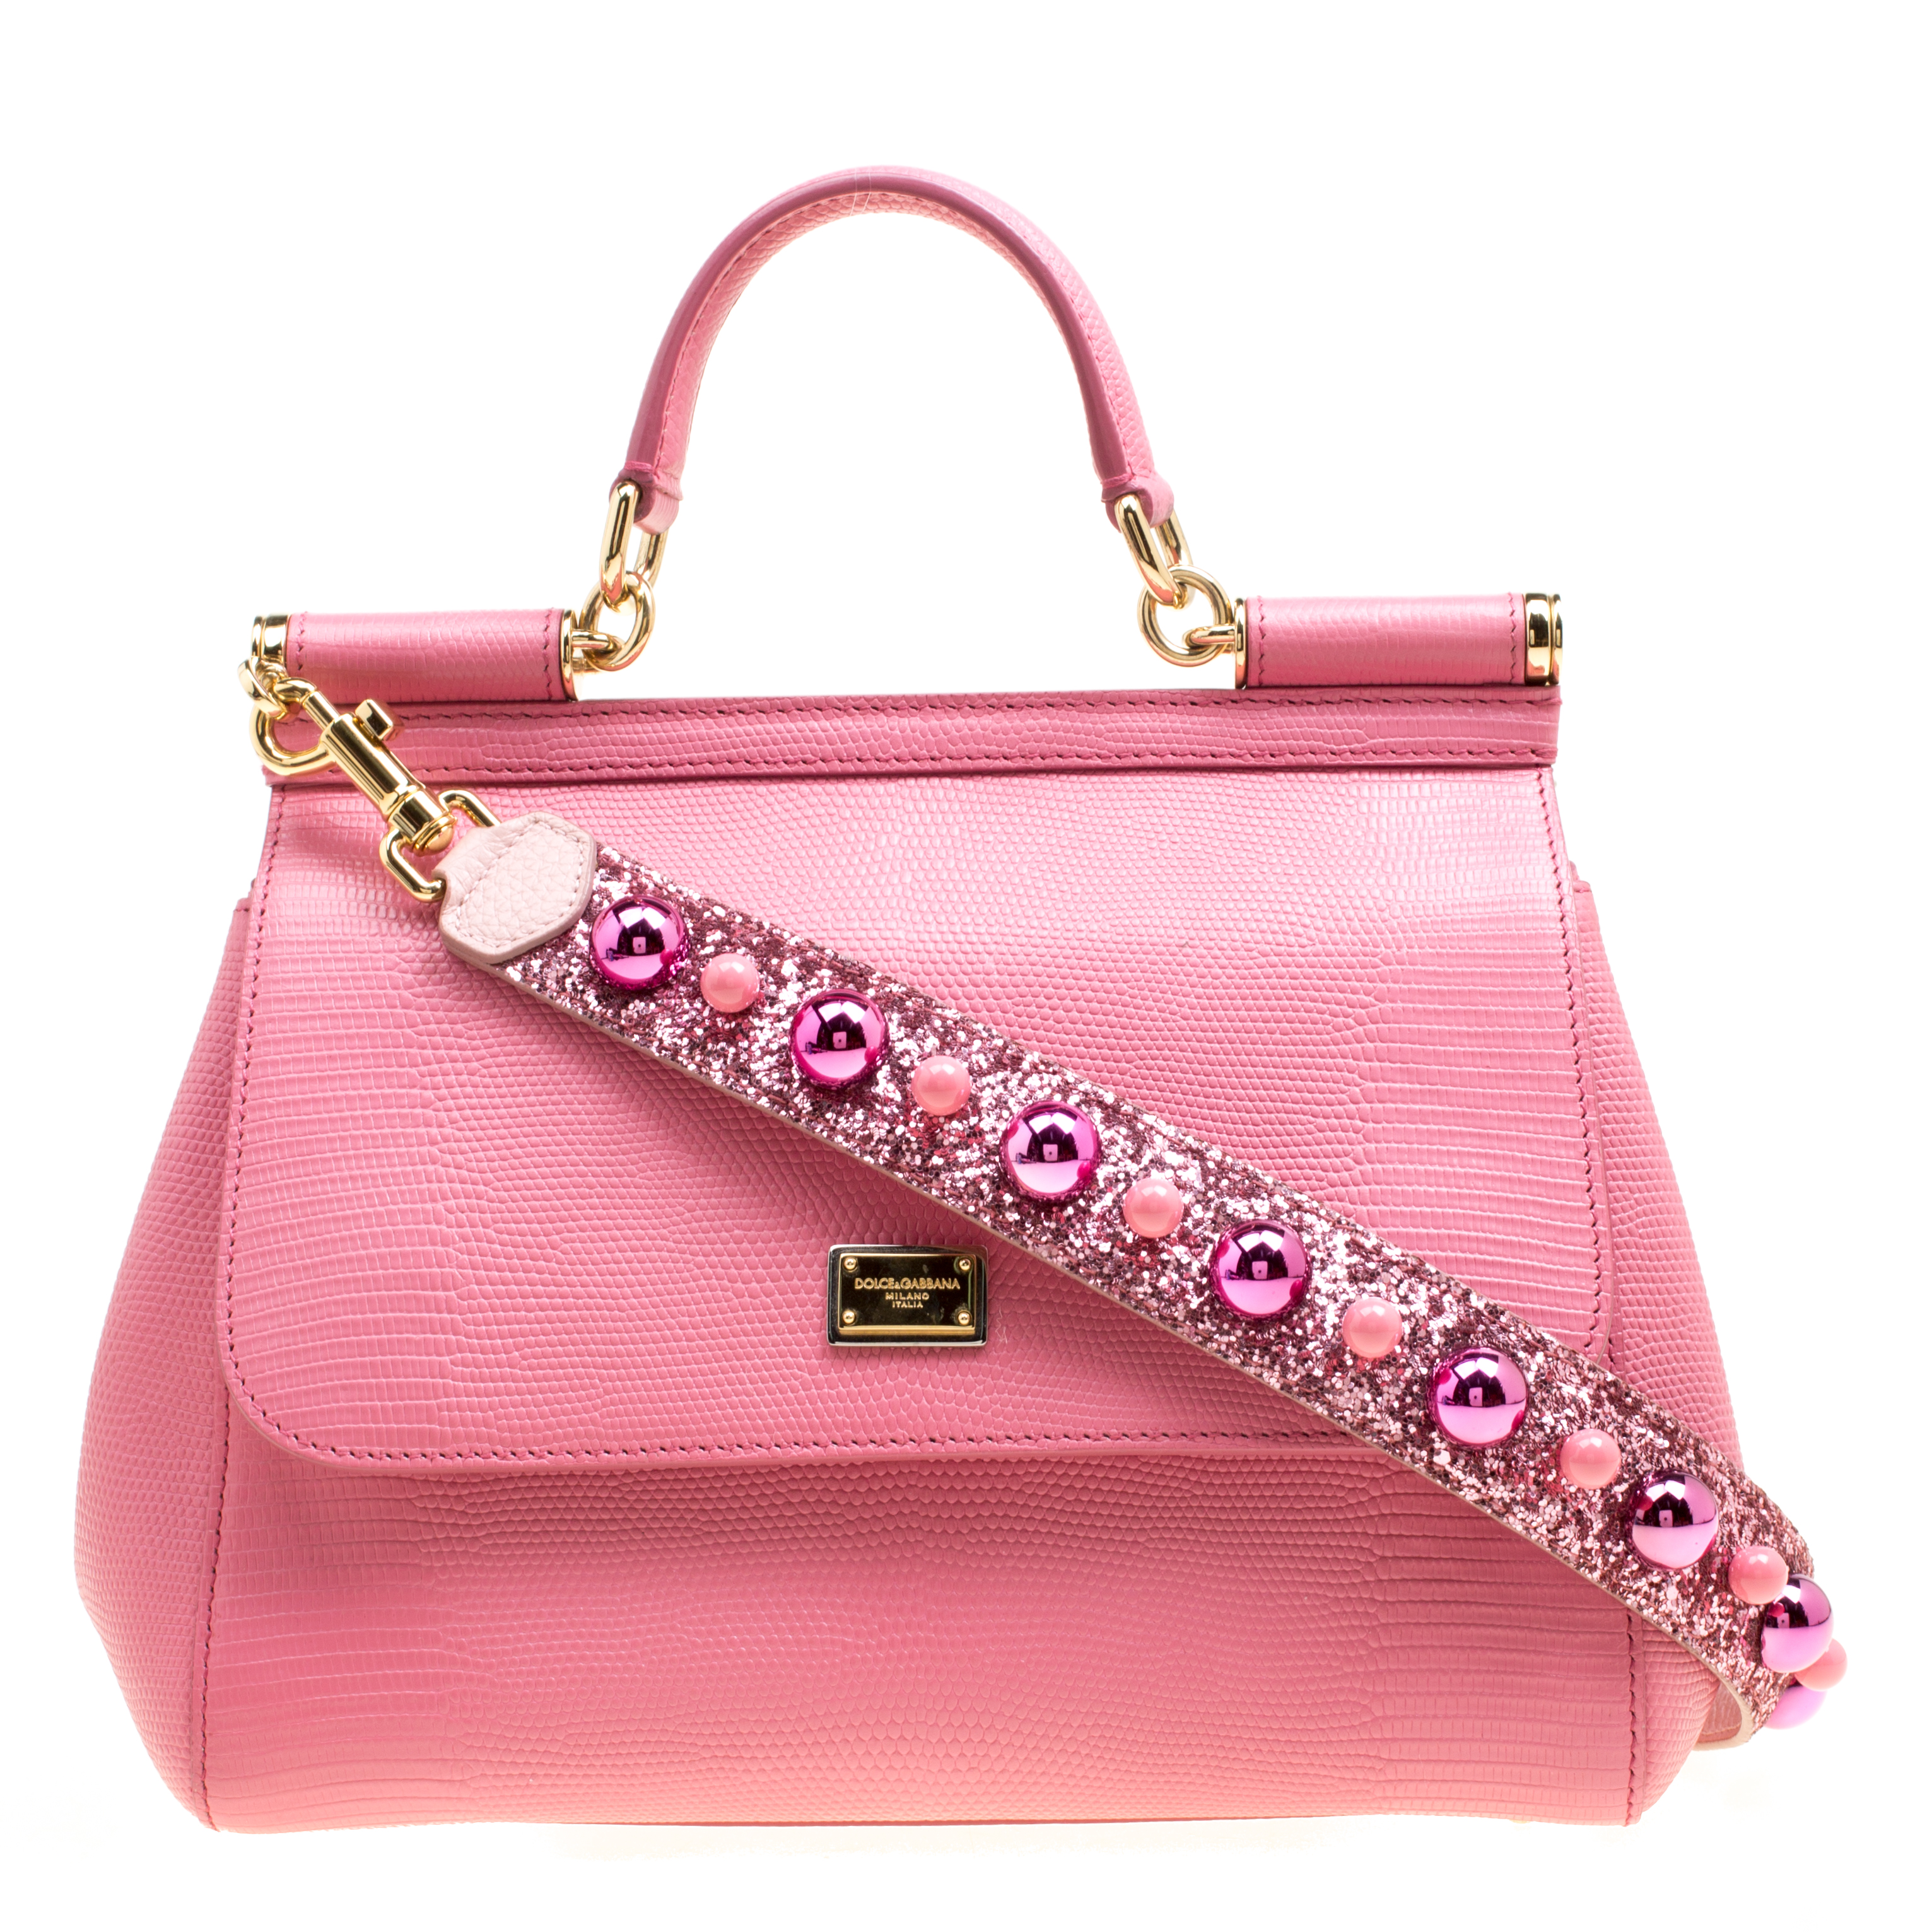 ... Dolce and Gabbana Pink Leather Medium Miss Sicily Top Handle Bag.  nextprev. prevnext 6b75f38bff